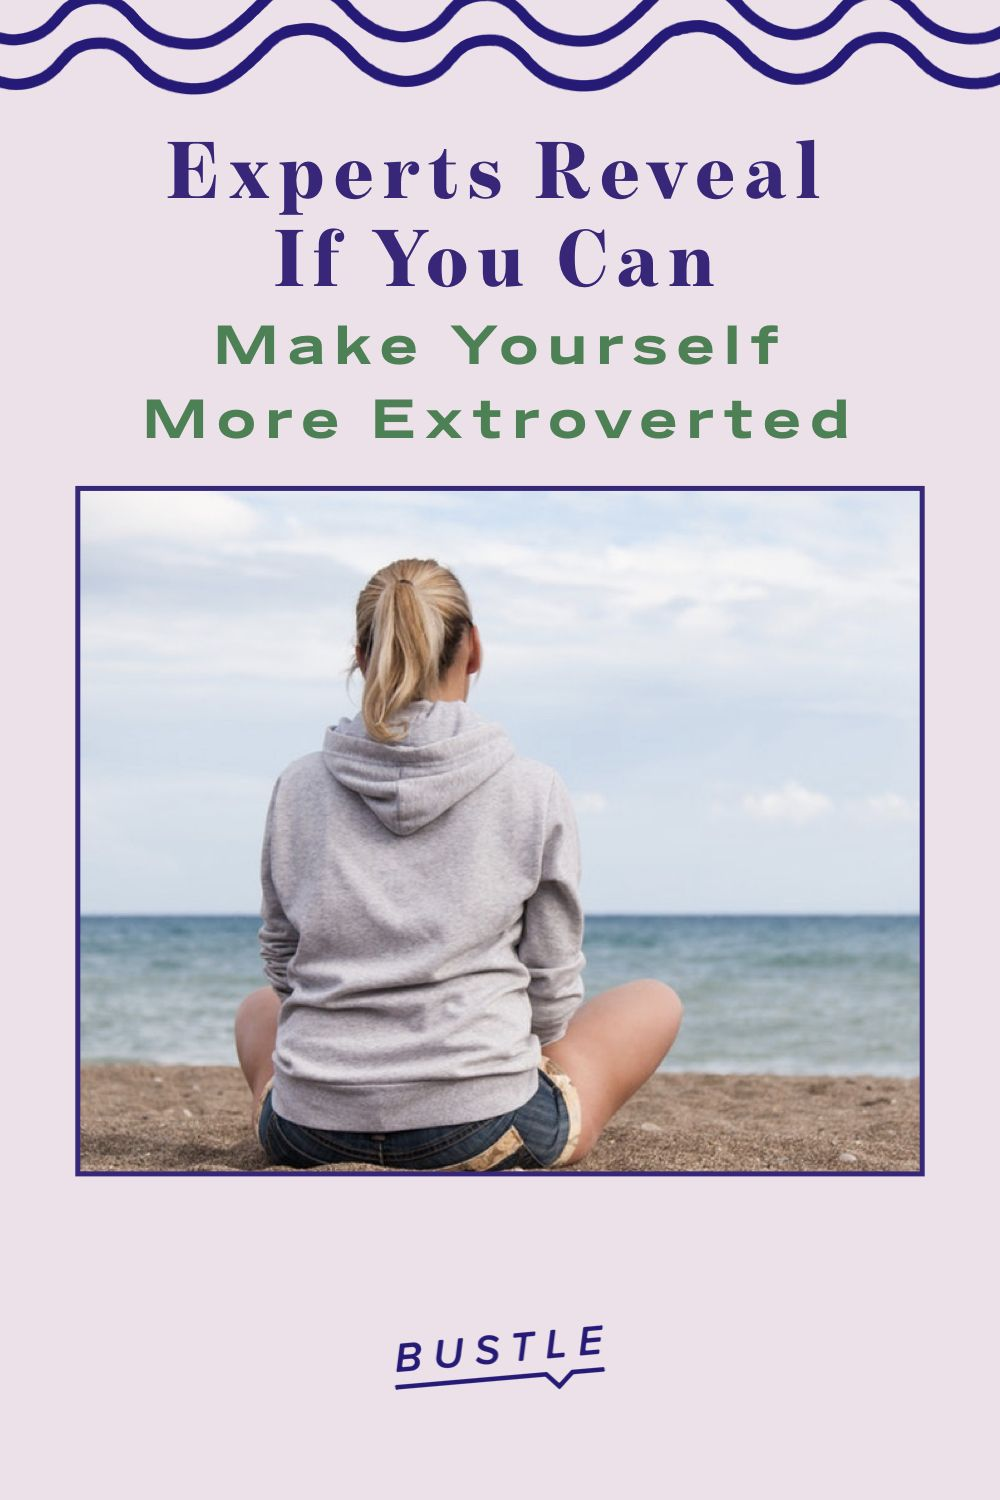 Experts Reveal If You Can Make Yourself More Extroverted